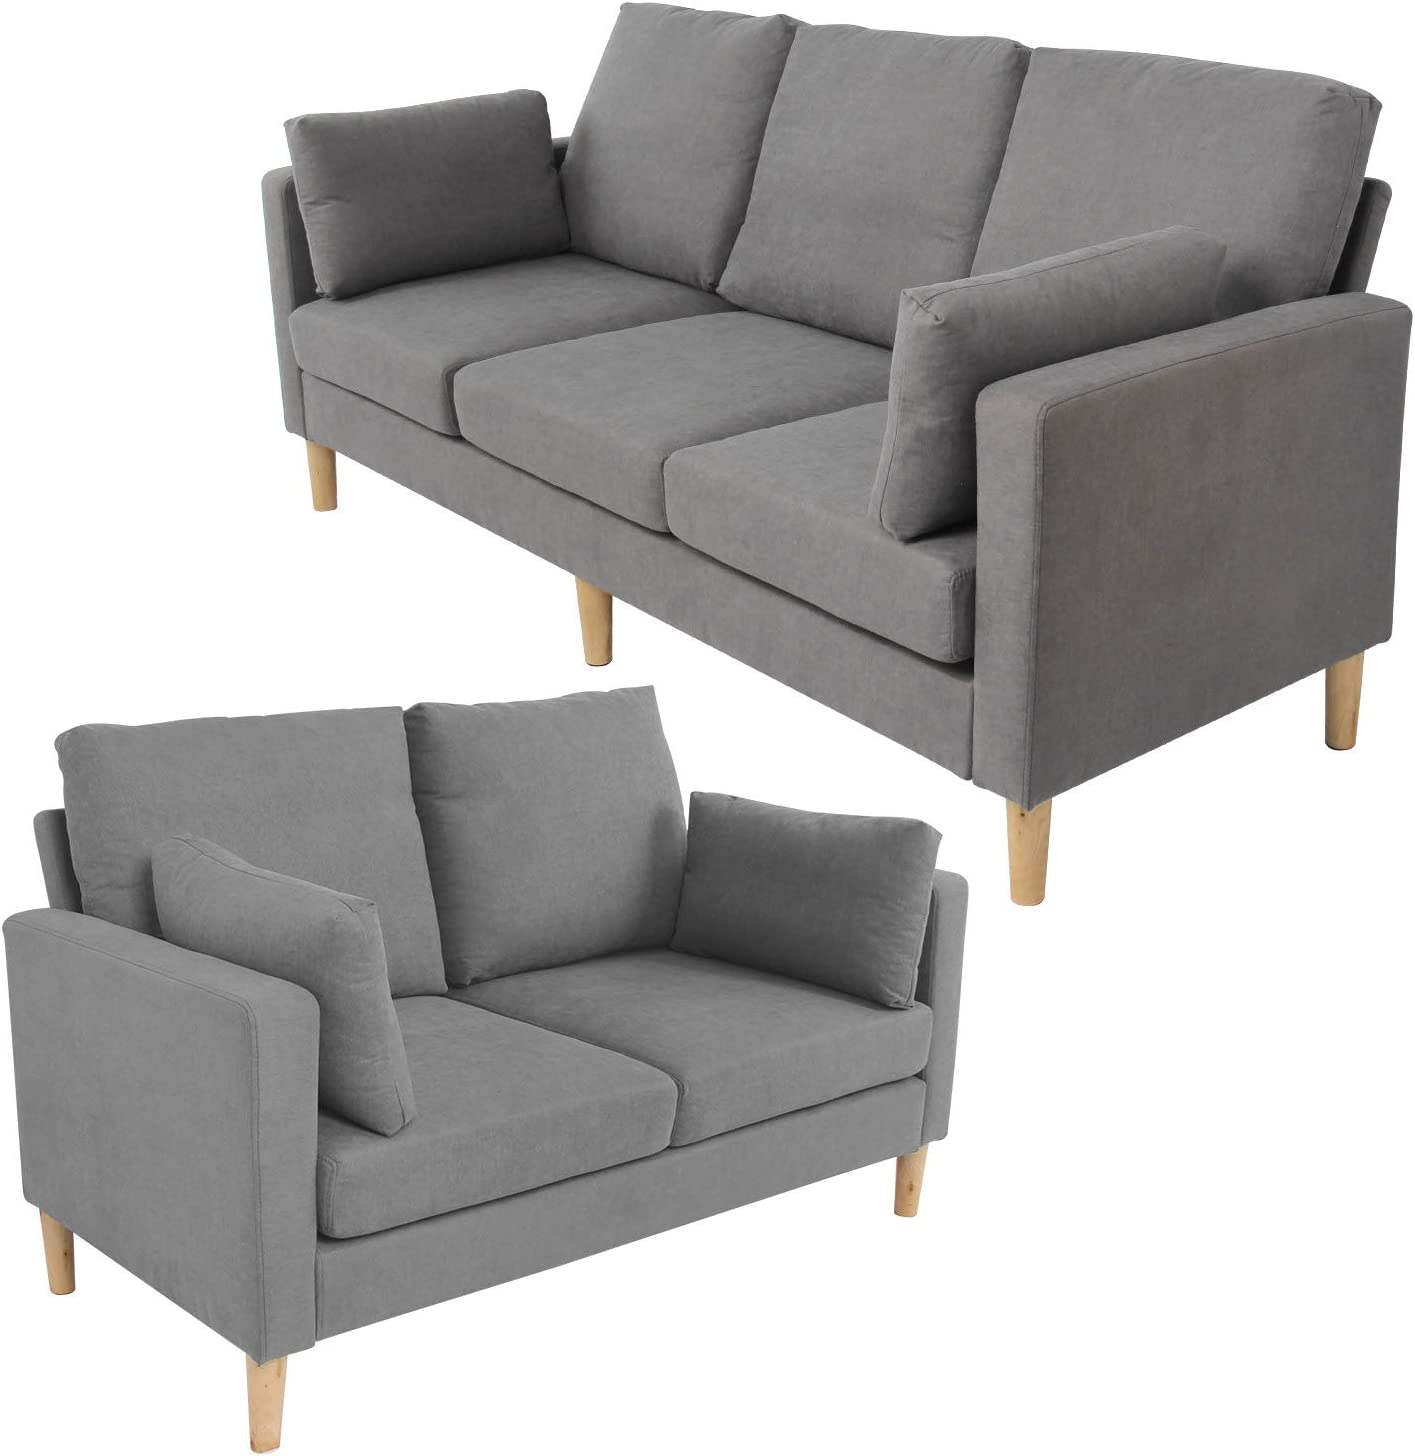 Sofa Set Sectional Sofa for Living Room Modern Sofa Couch and Sofas Contemporary Fabric Loveseat Sofa 3 Seat Sofa for Home Furniture Futon